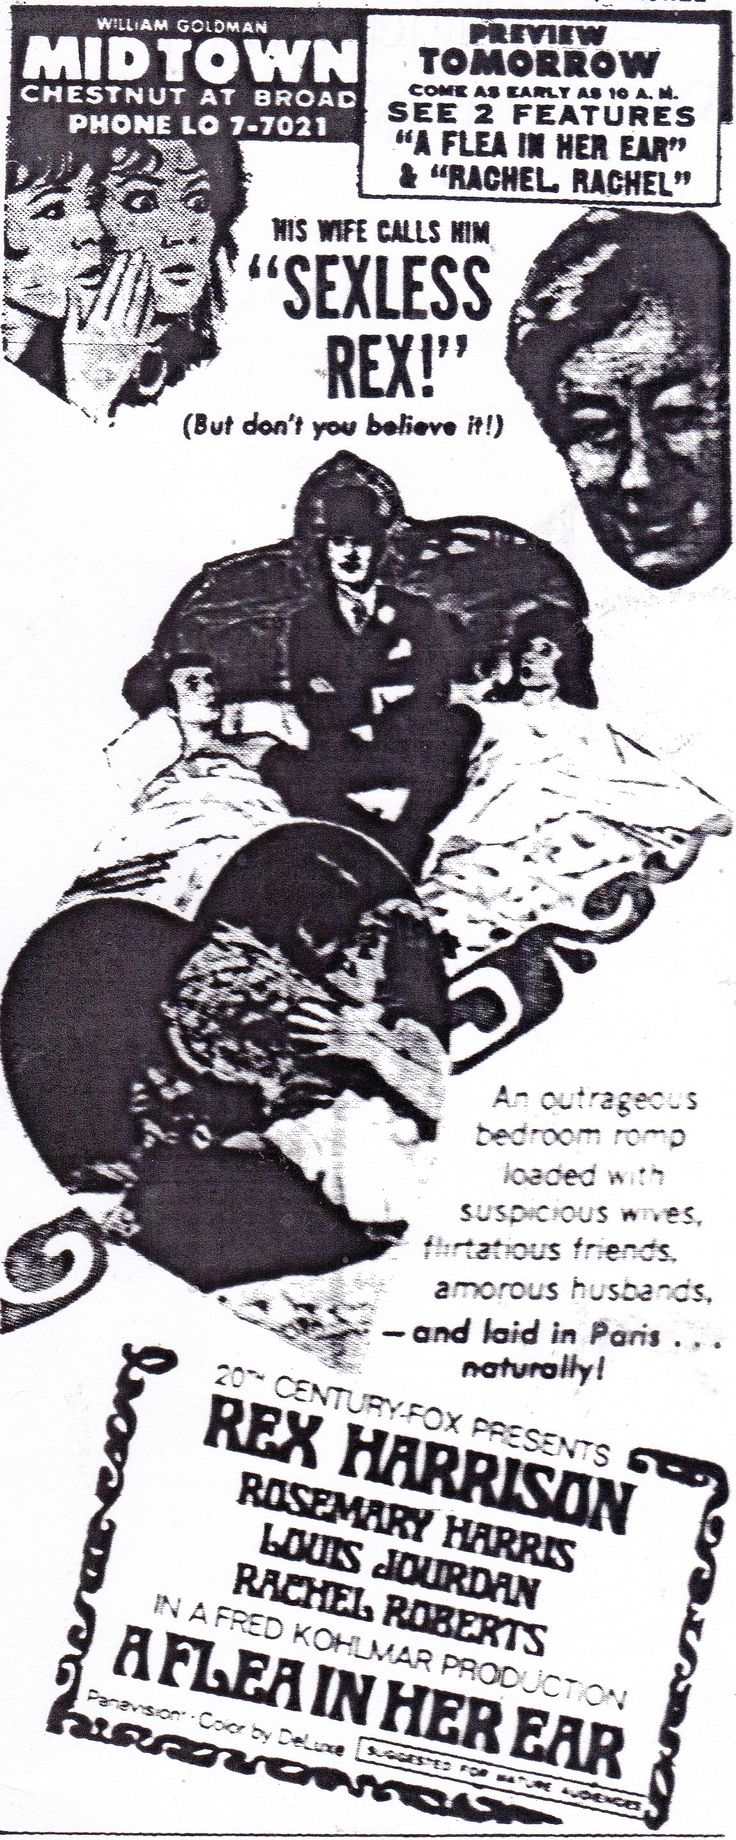 """Ad for """"A Flea in Her Ear,"""" starring Rex Harrison, Rosemary Harris, Louis Jourdan, and Rachel Roberts.  From The Evening Bulletin - Philadelphia; Monday, November 25th, 1968, Page 26."""